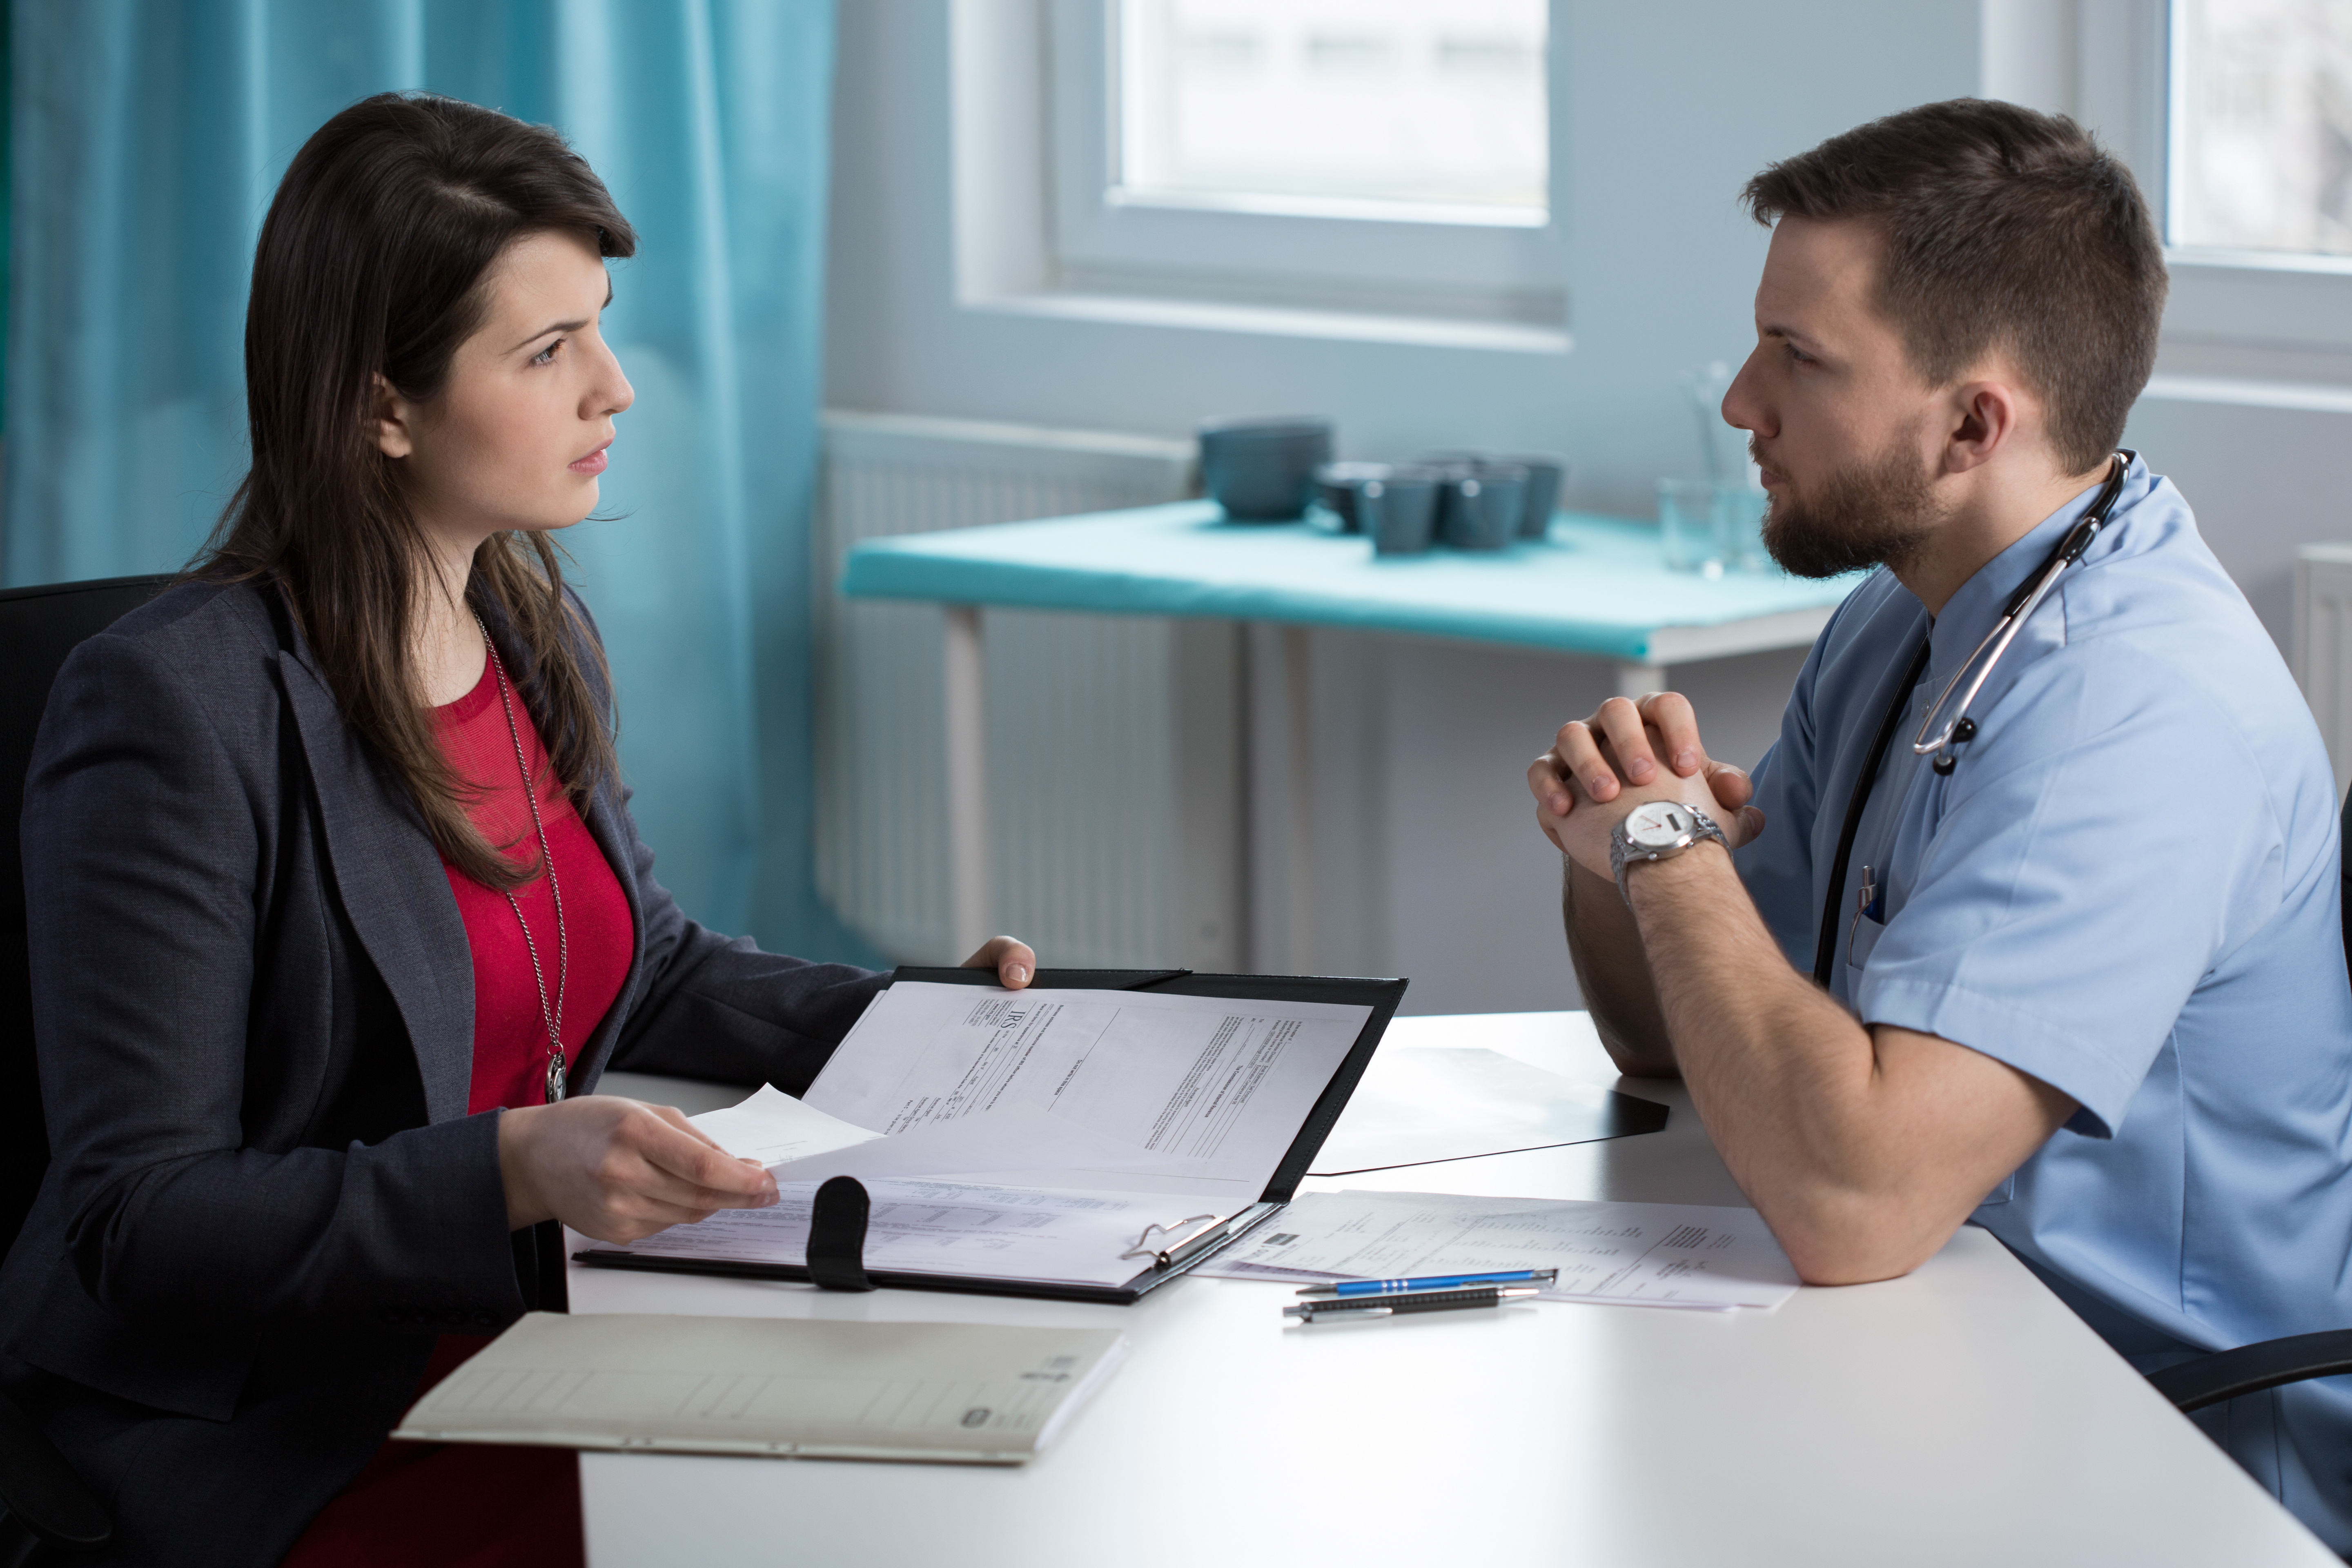 How to Handle Medical Board Complaints